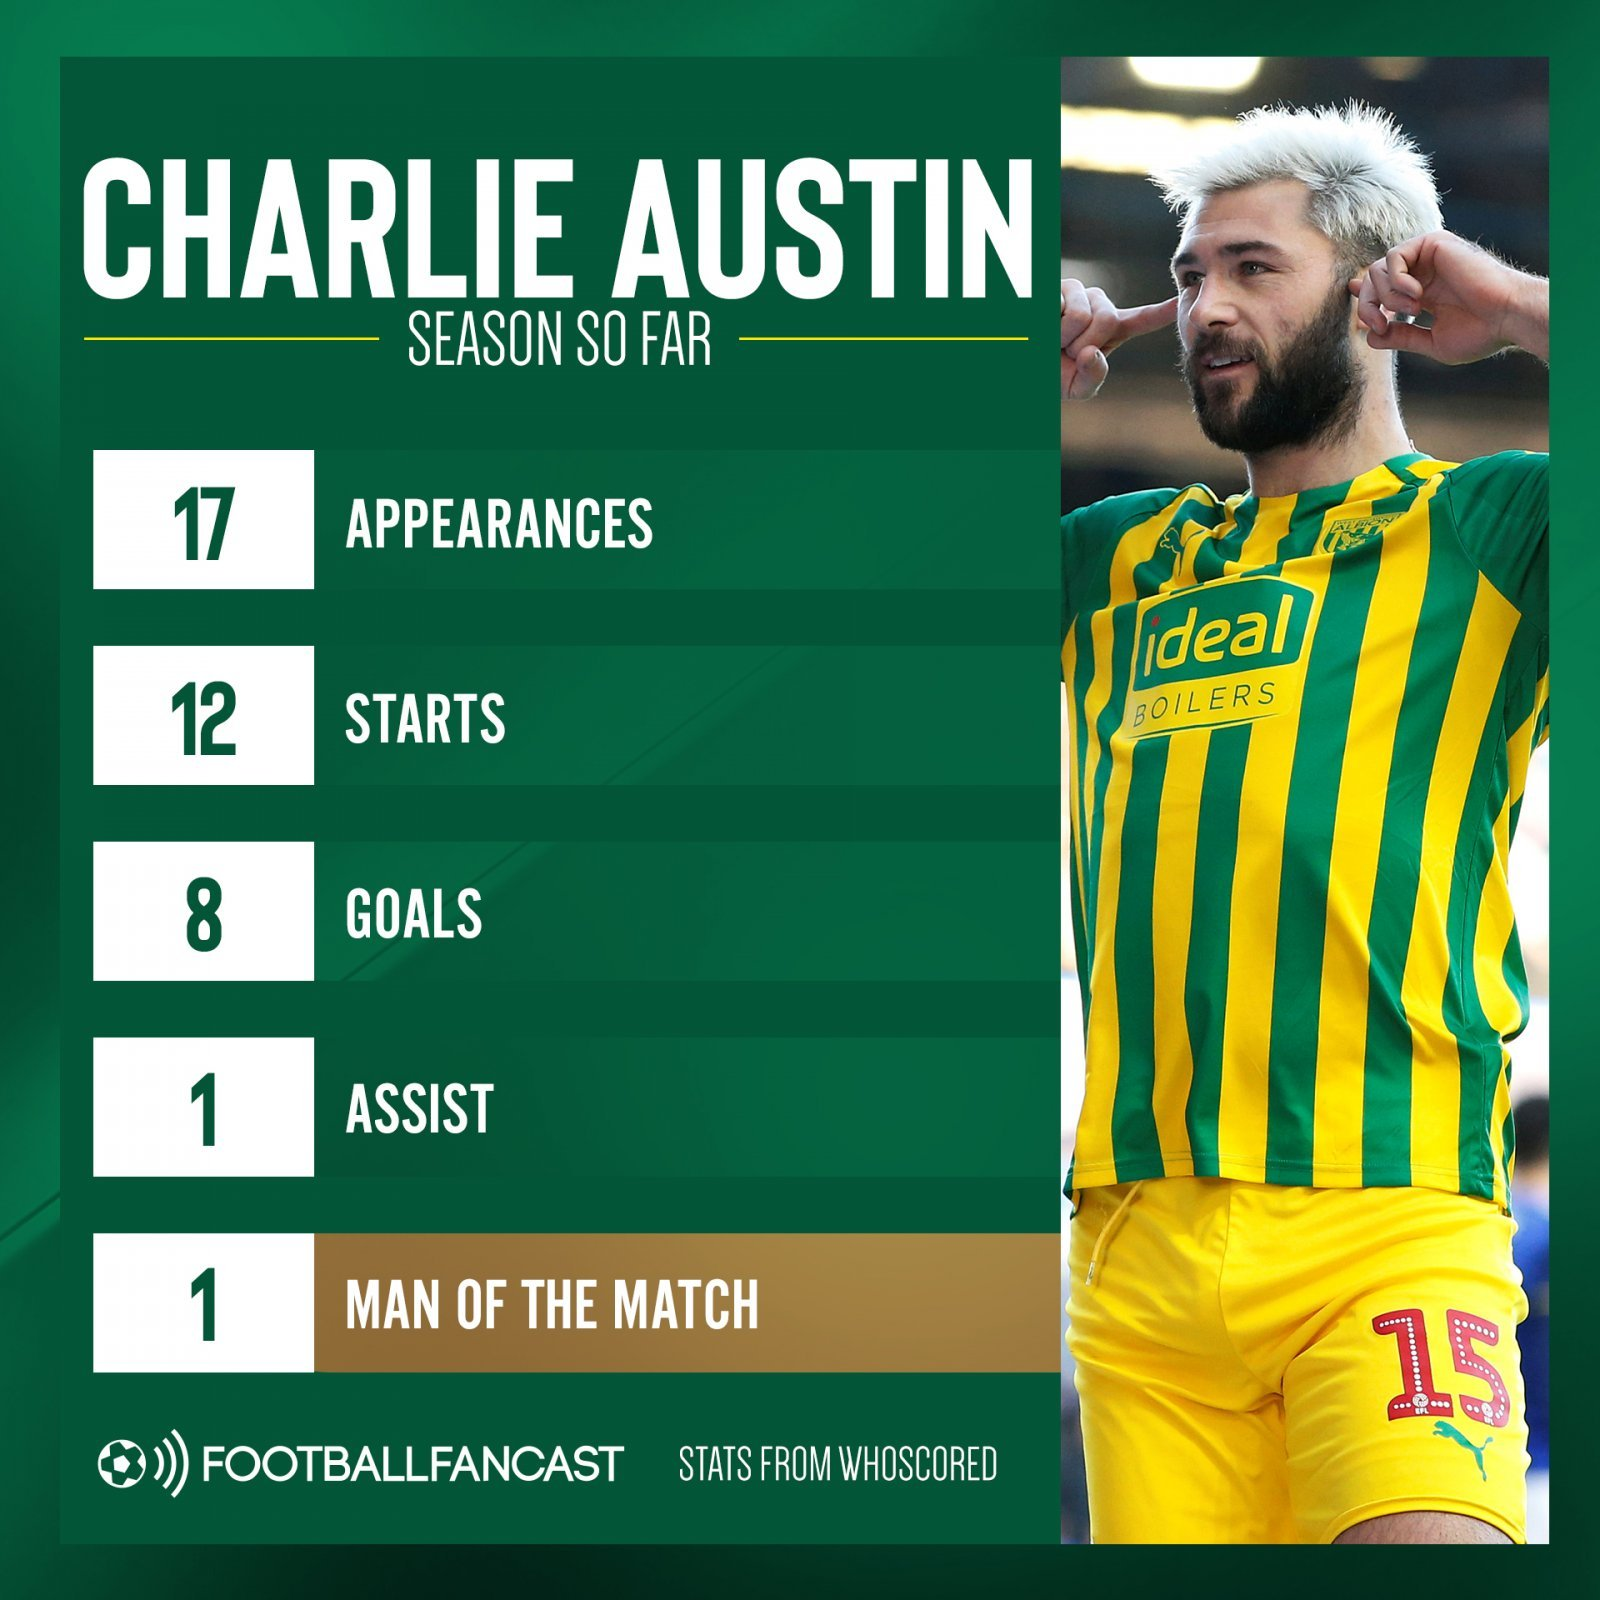 Charlie Austin this season - Southampton's and Hasenhuttl's £4m mistake is coming back to haunt them - opinion